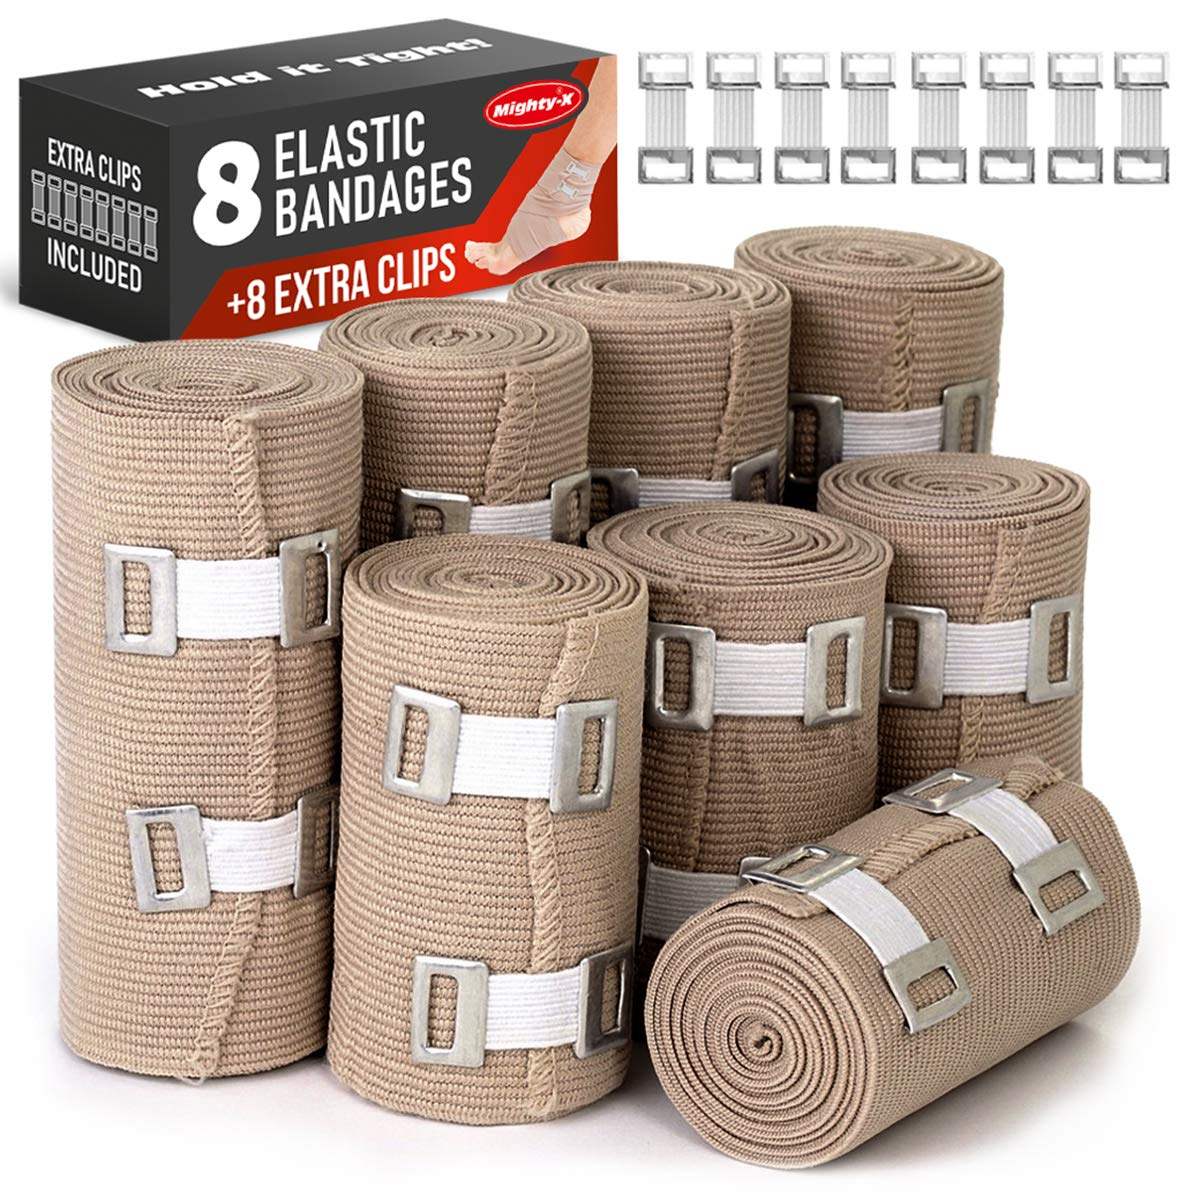 Premium Elastic Bandage Wrap - 8 Pack + 8 Extra Clips - Durable Compression Bandage (4X - 3 inch, 4X - 4 inch Rolls) Stretches up to 15ft in Length by Mighty-X